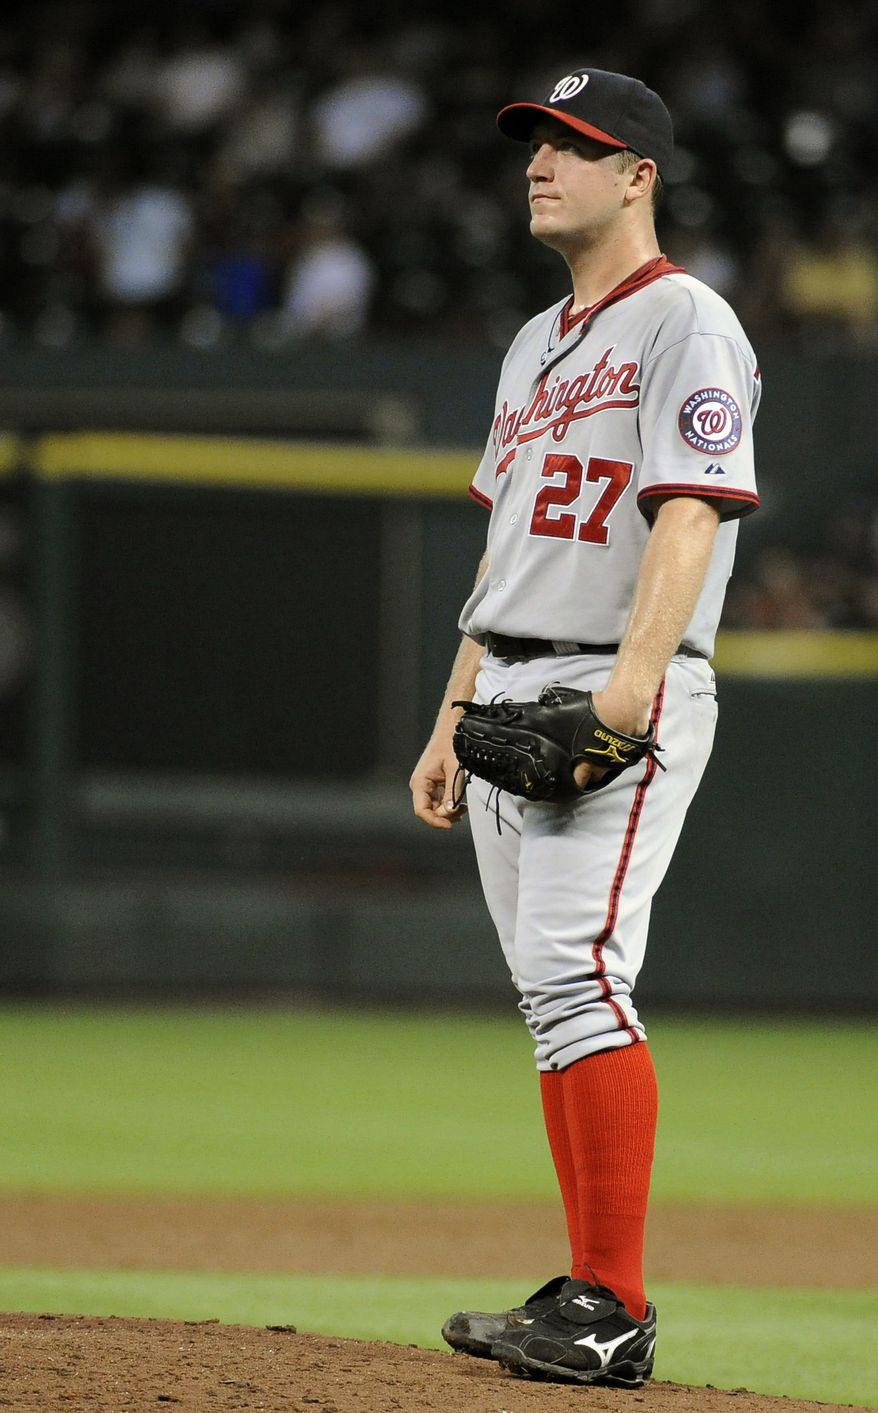 Washington Nationals starting pitcher Jordan Zimmerman takes a moment off the mound in the fourth inning of a baseball game against the Houston Astros on Tuesday. Zimmermann allowed six earned runs in the Nats' 7-6 loss to the Astros. (AP Photo/Pat Sullivan)